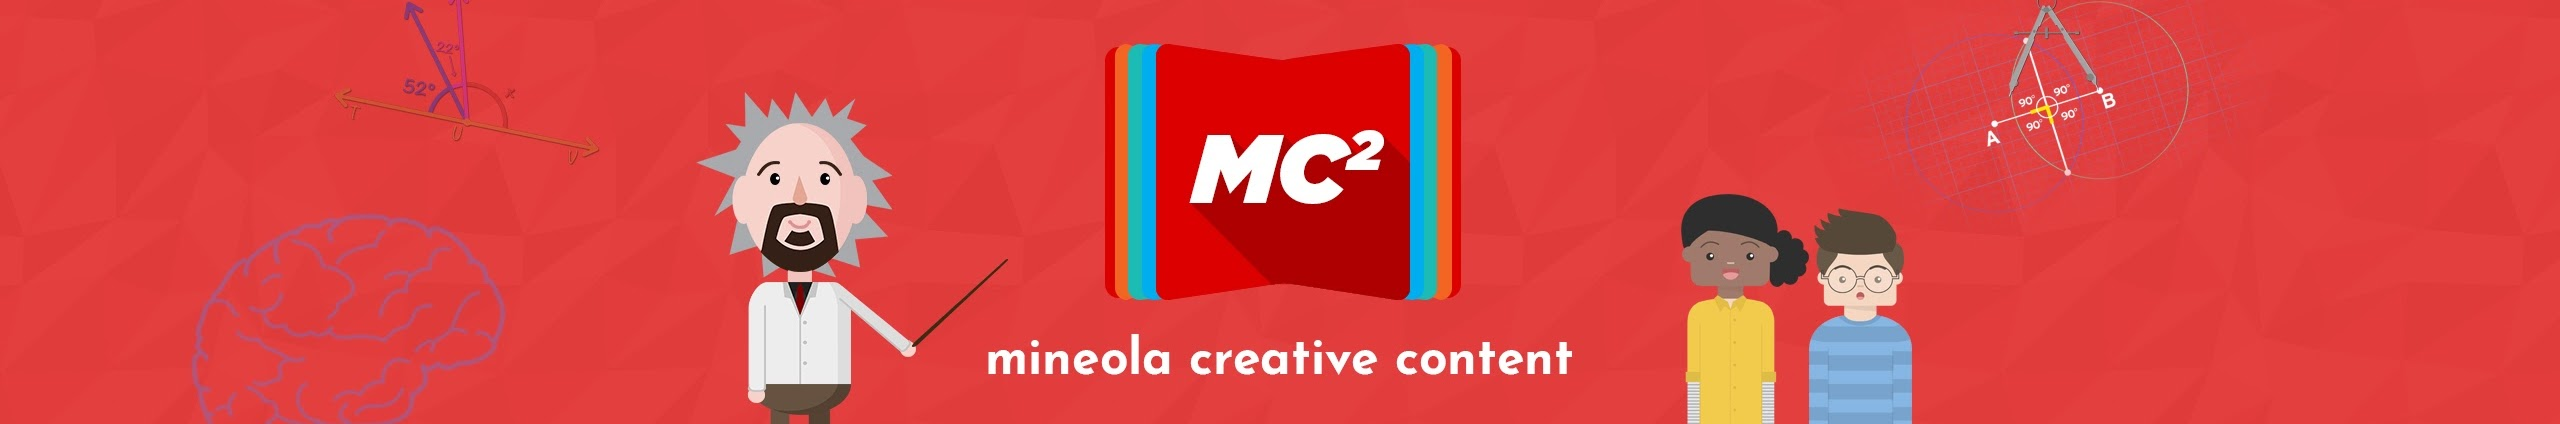 3efc1cacecf64 Mineola Creative Content - YouTube